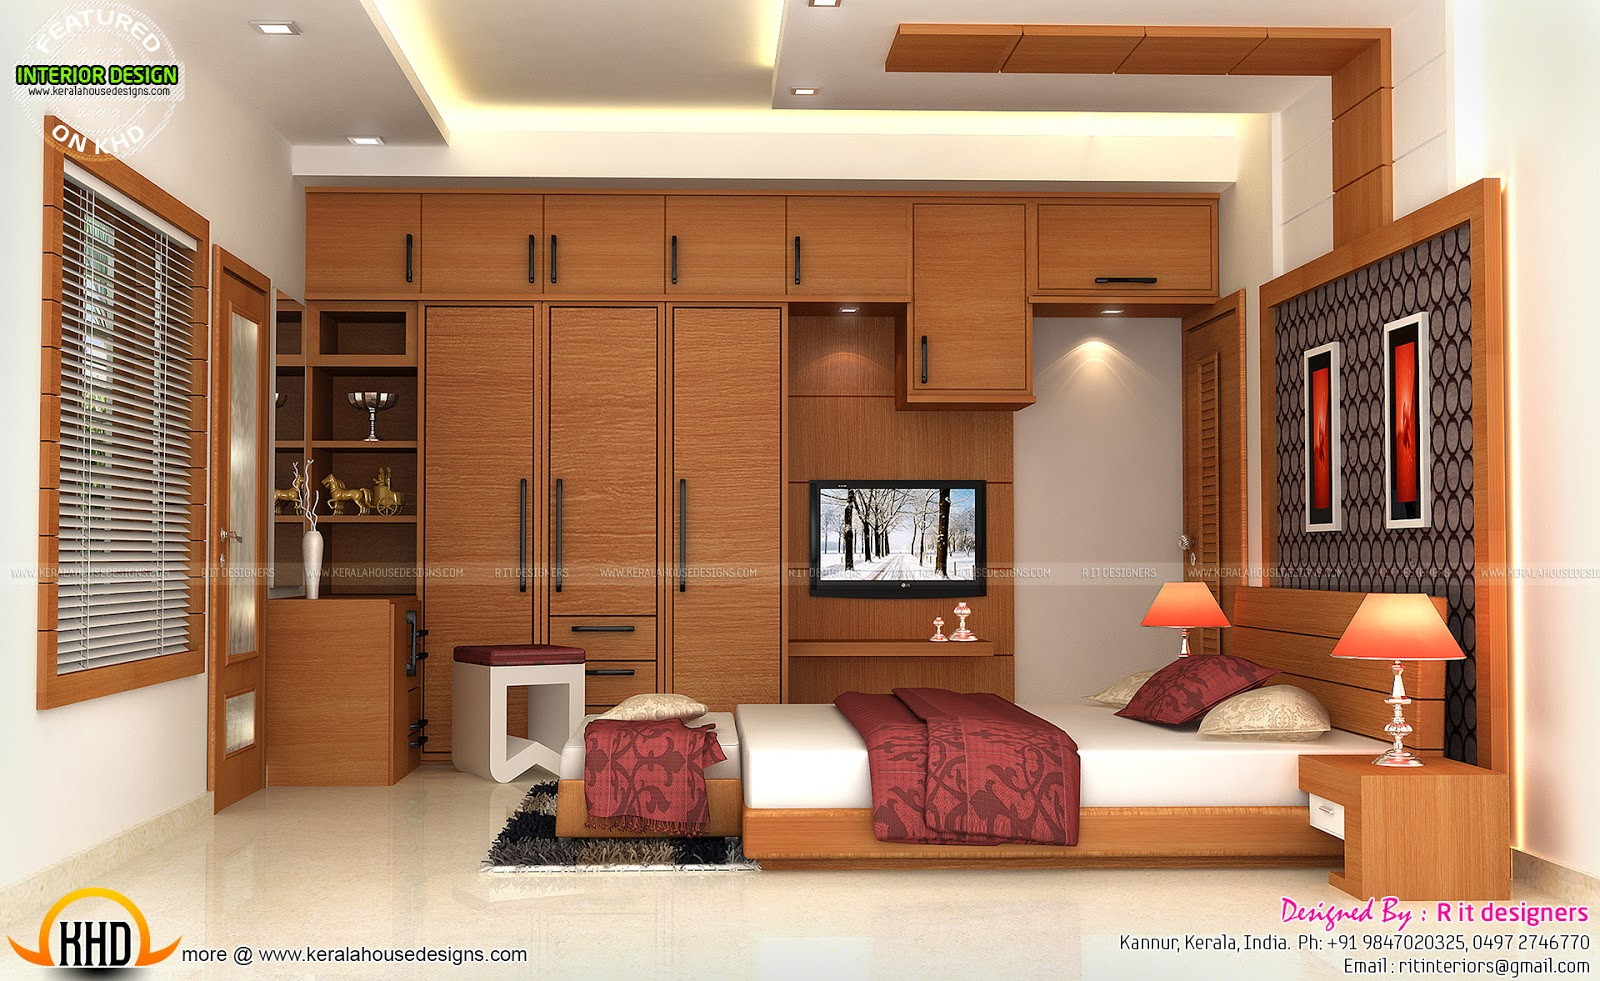 Interiors of bedrooms and kitchen kerala home design and for Kitchen and bedroom designs